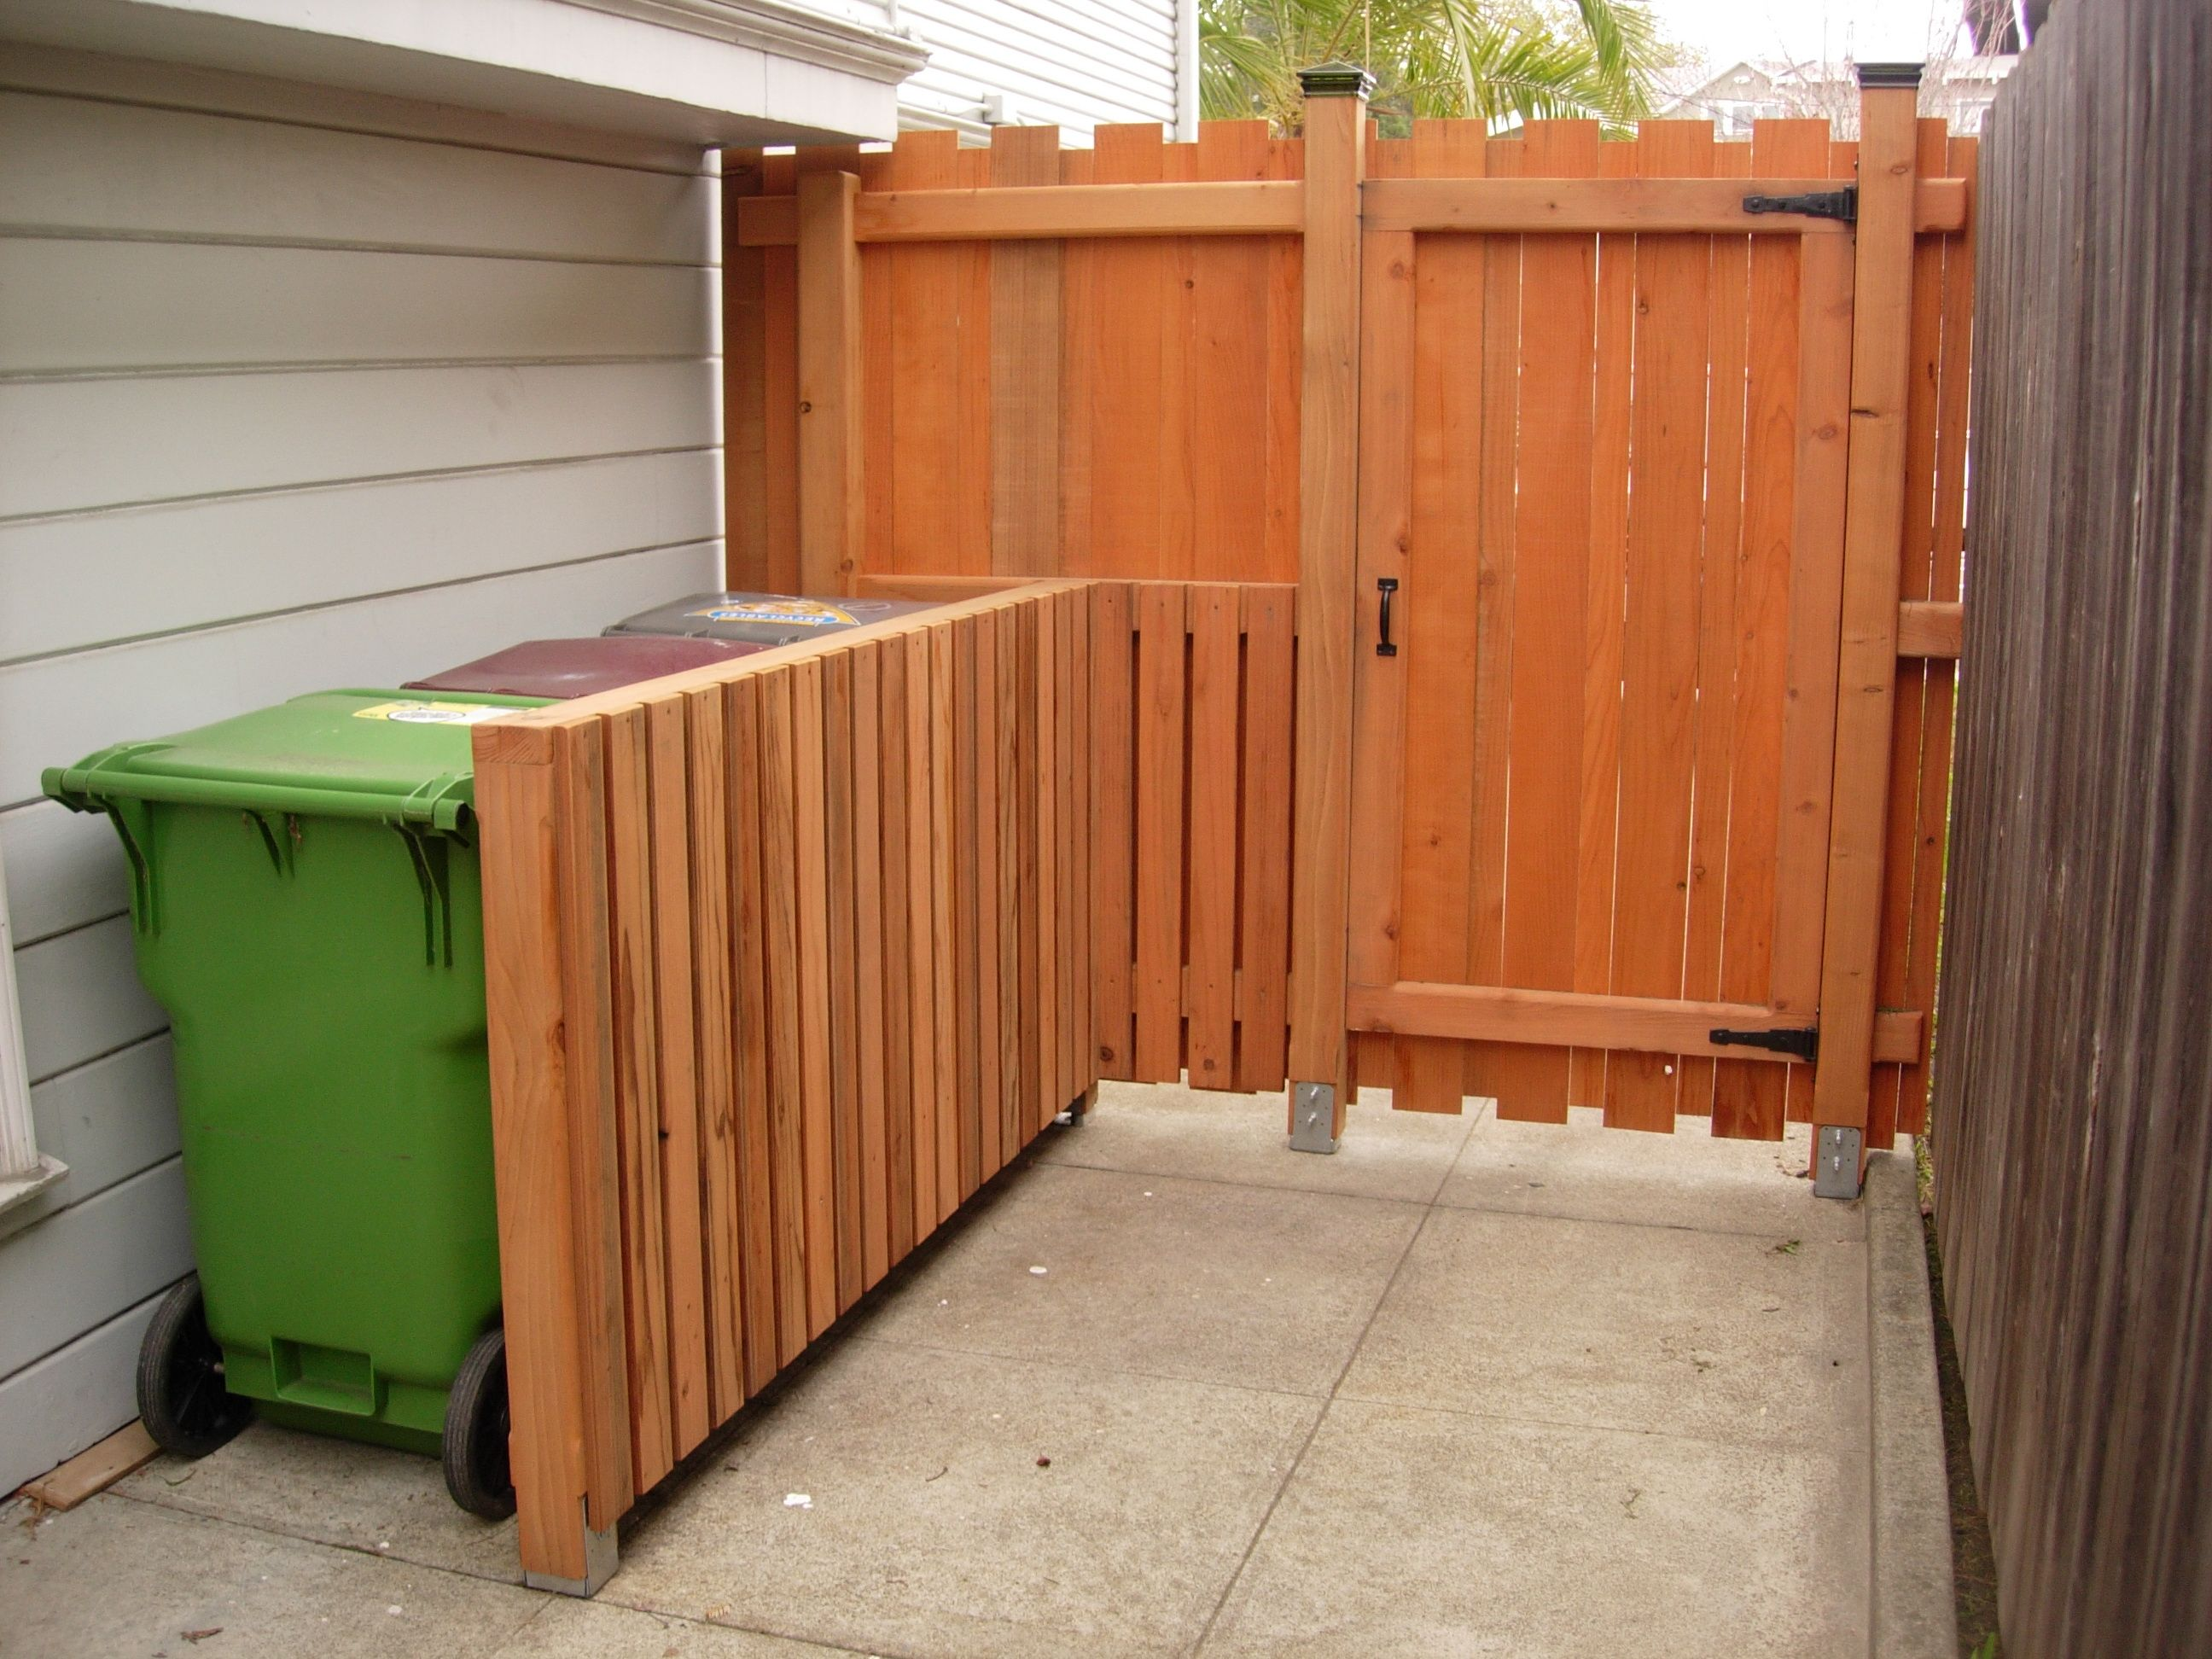 garbage privacy fence hide trash cans